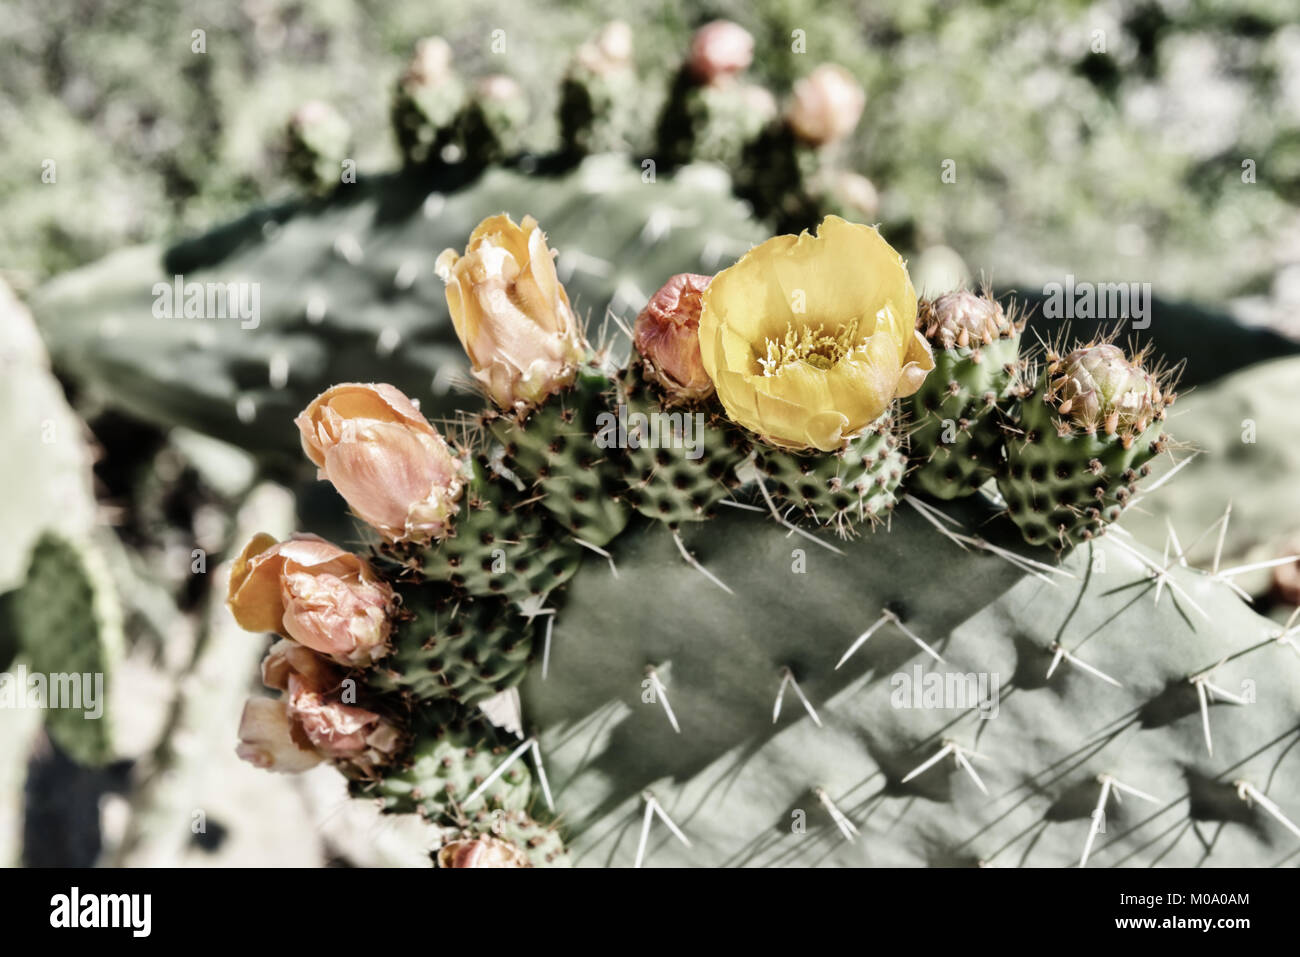 Prickly pear cactus with orange and yellow flower blossoms. Vintage, high key, high contrast image with muted colours. - Stock Image